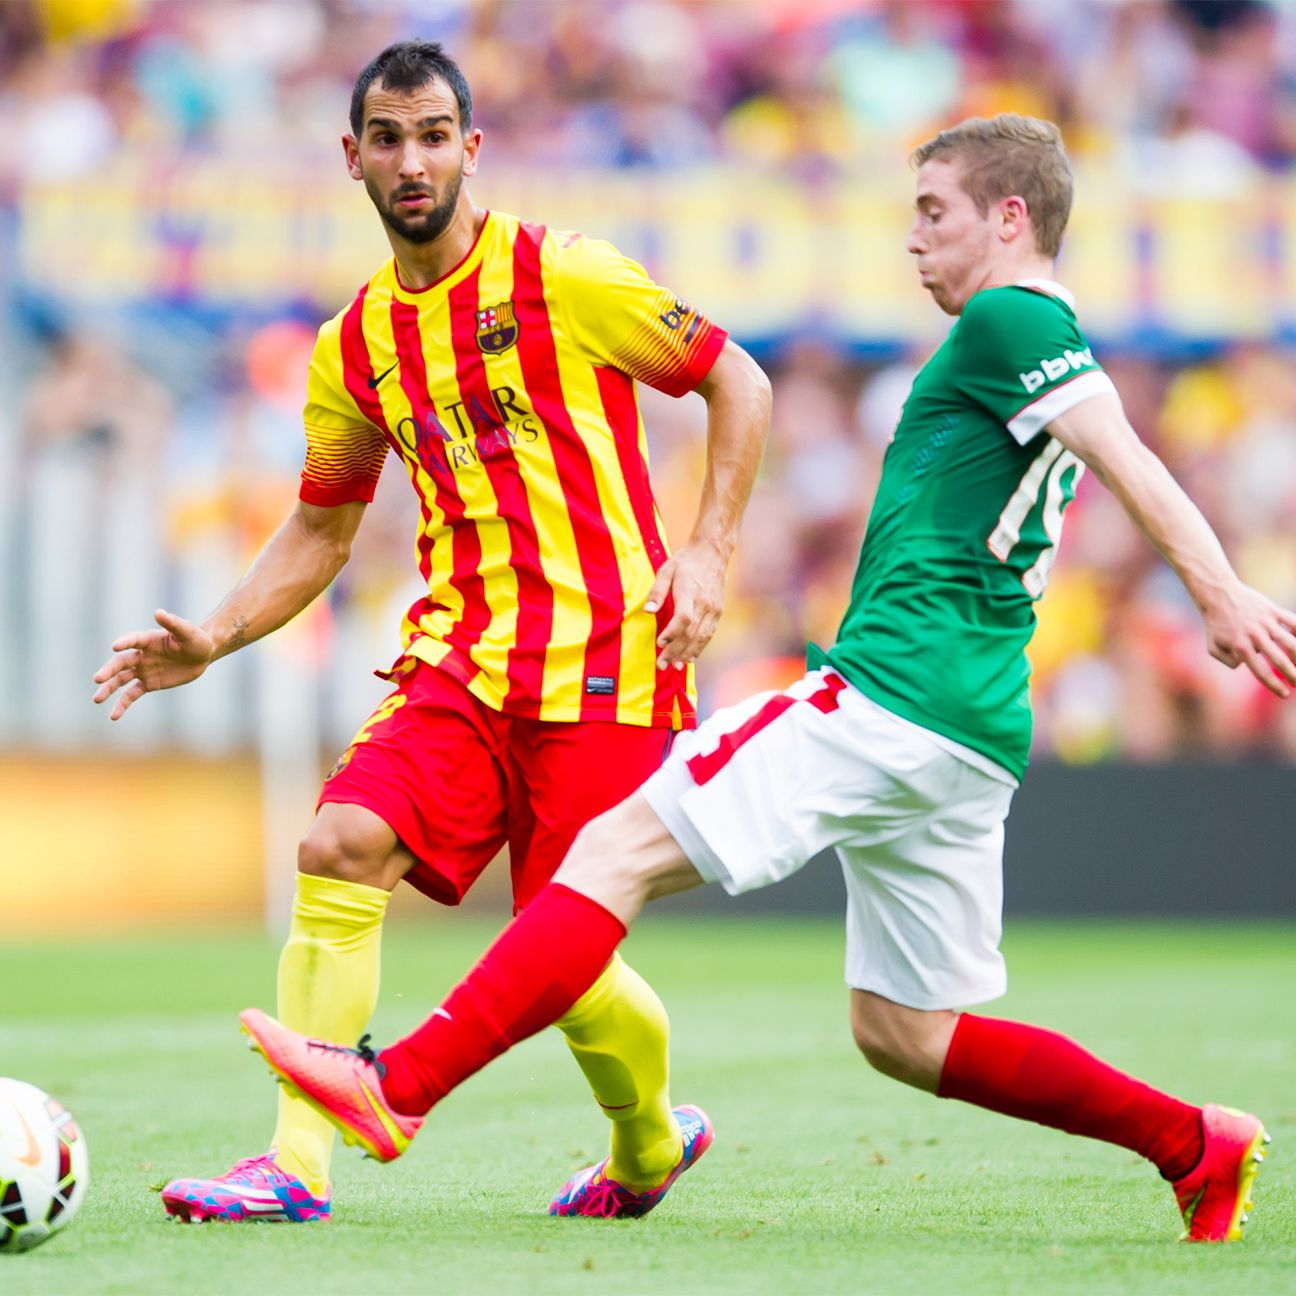 Inter Milan's summer spending continued with the addition of little-used Barcelona right-back Martin Montoya.